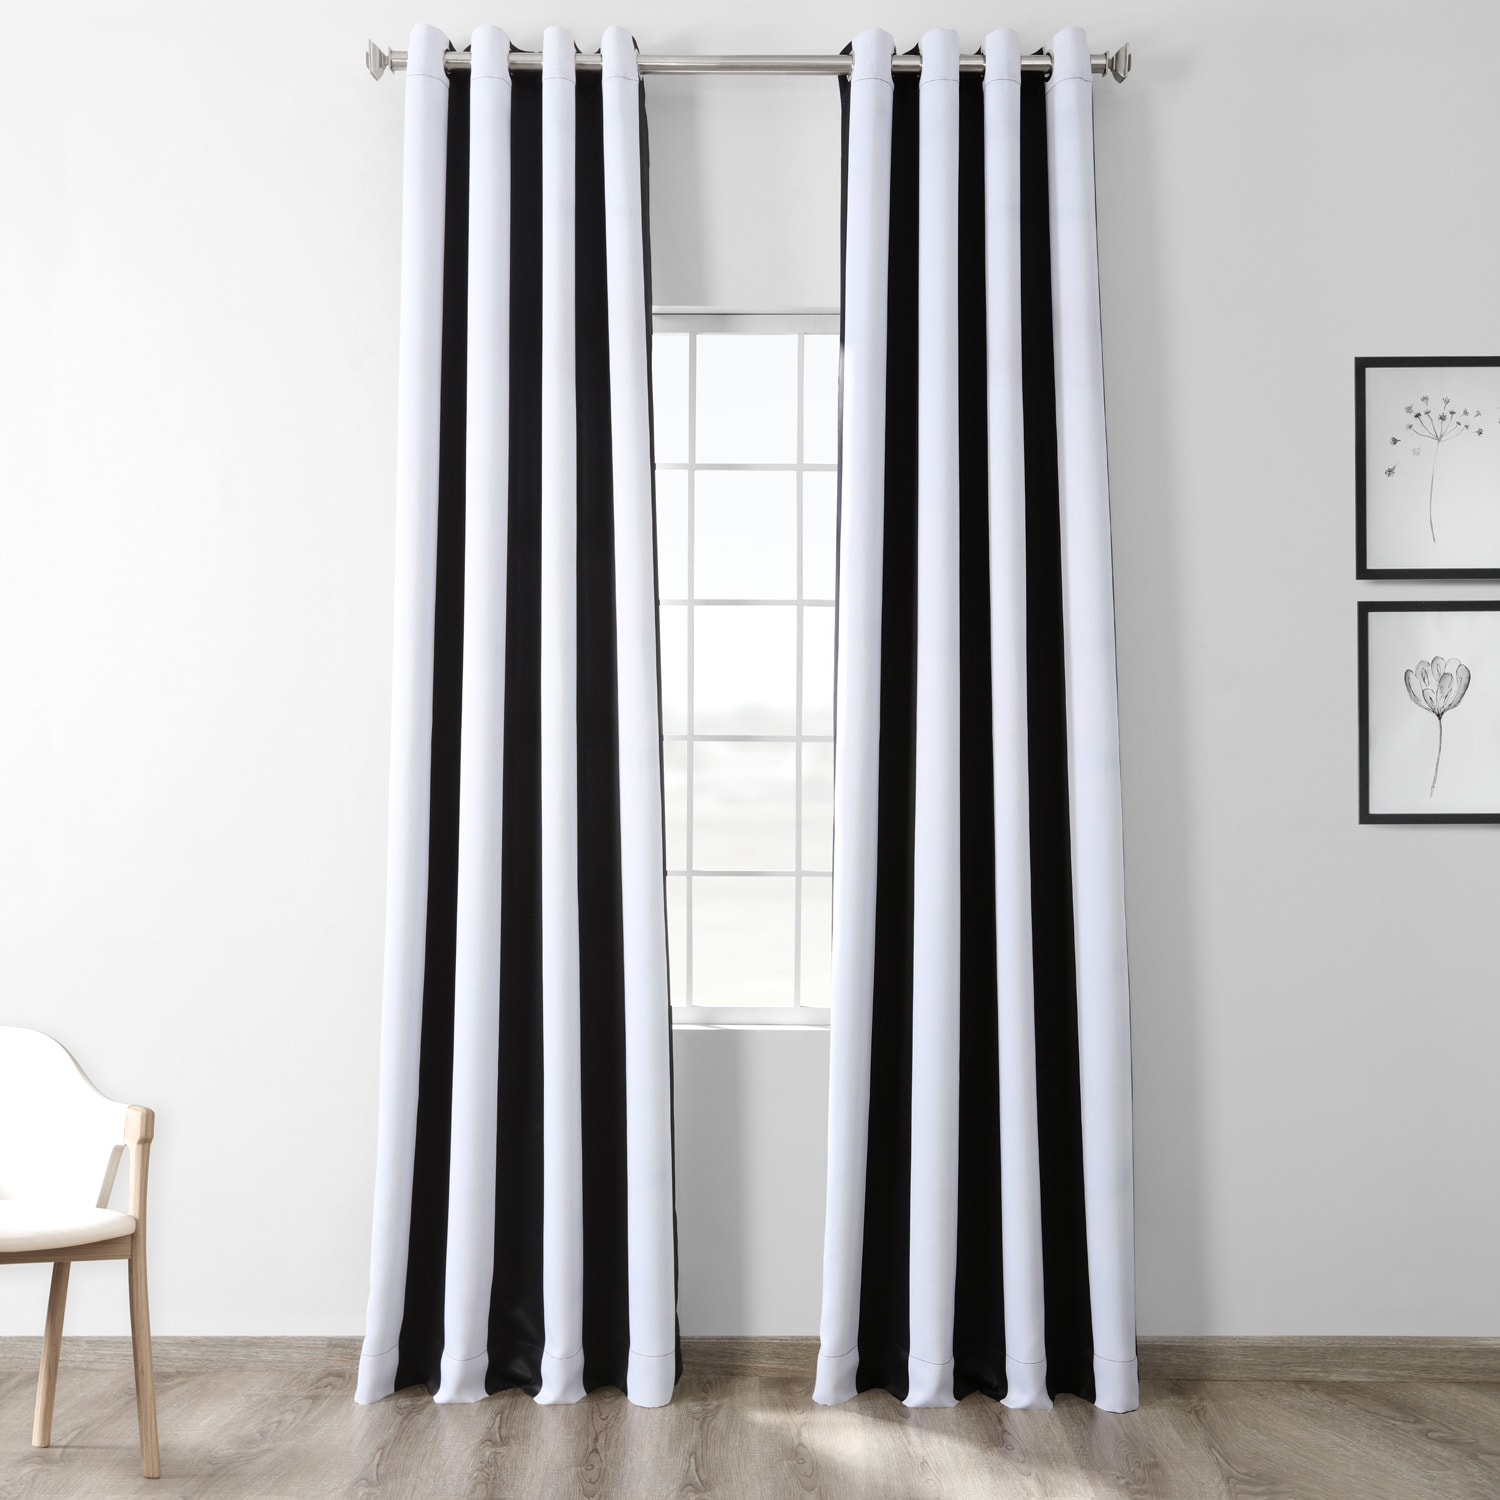 Awning Black White Stripe Grommet Blackout Curtains